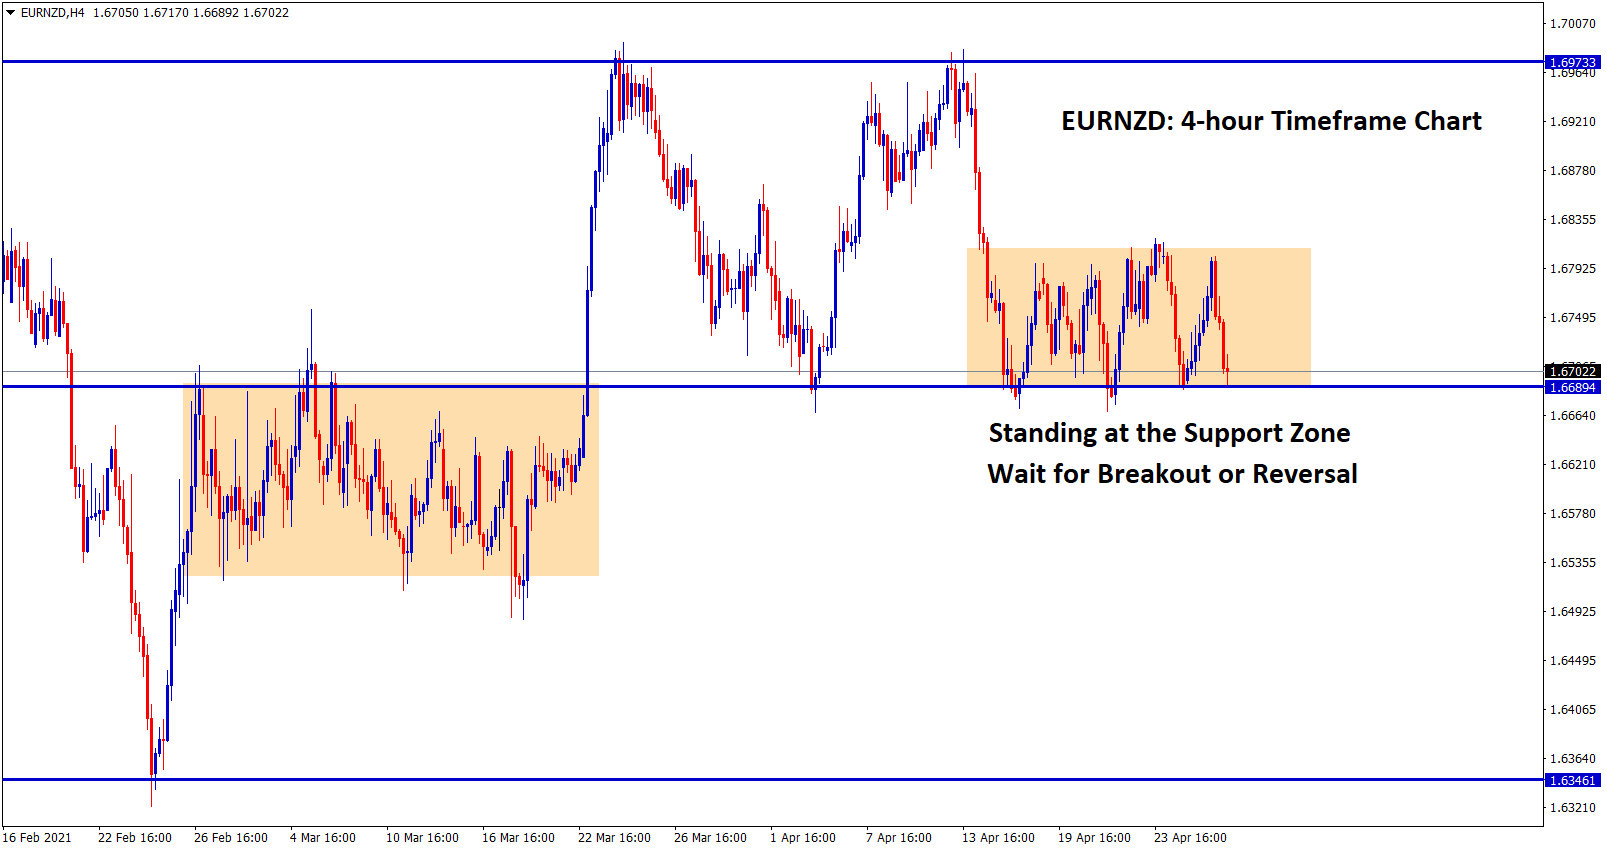 EURNZD is standing at the support zone